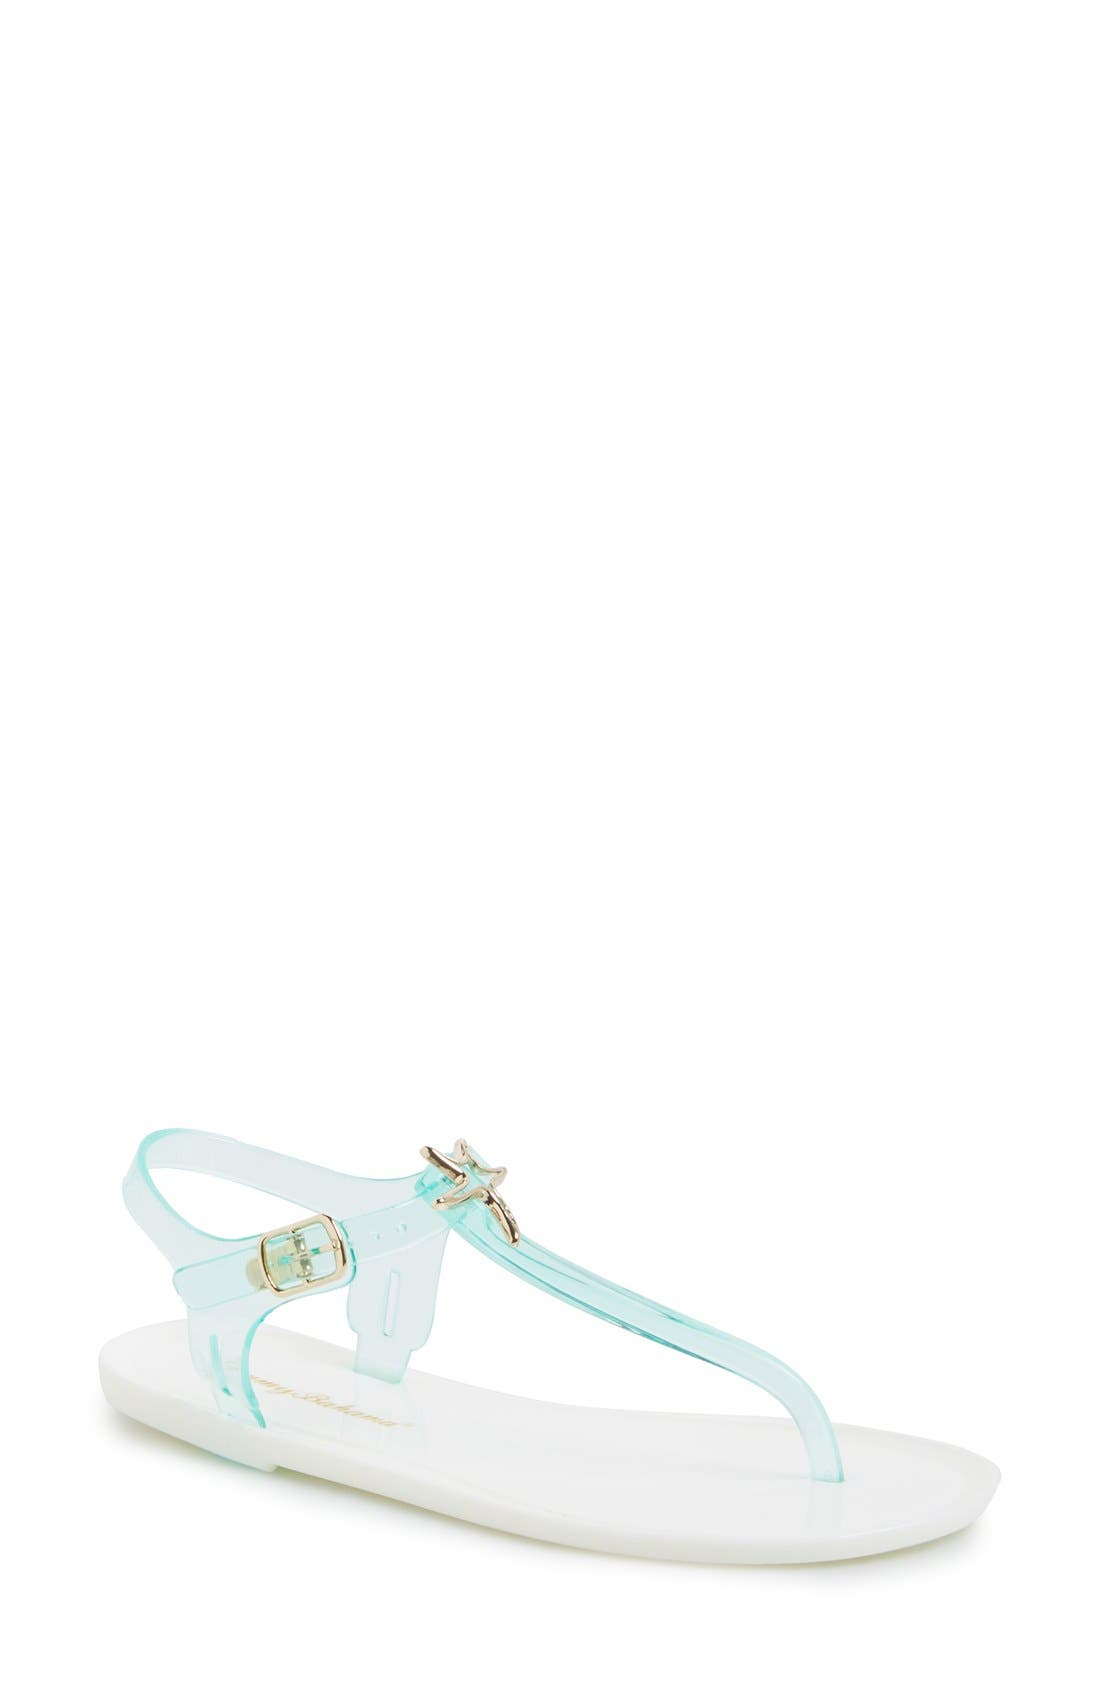 Alternate Image 1 Selected - Tommy Bahama 'Star' Jelly Sandal (Women)